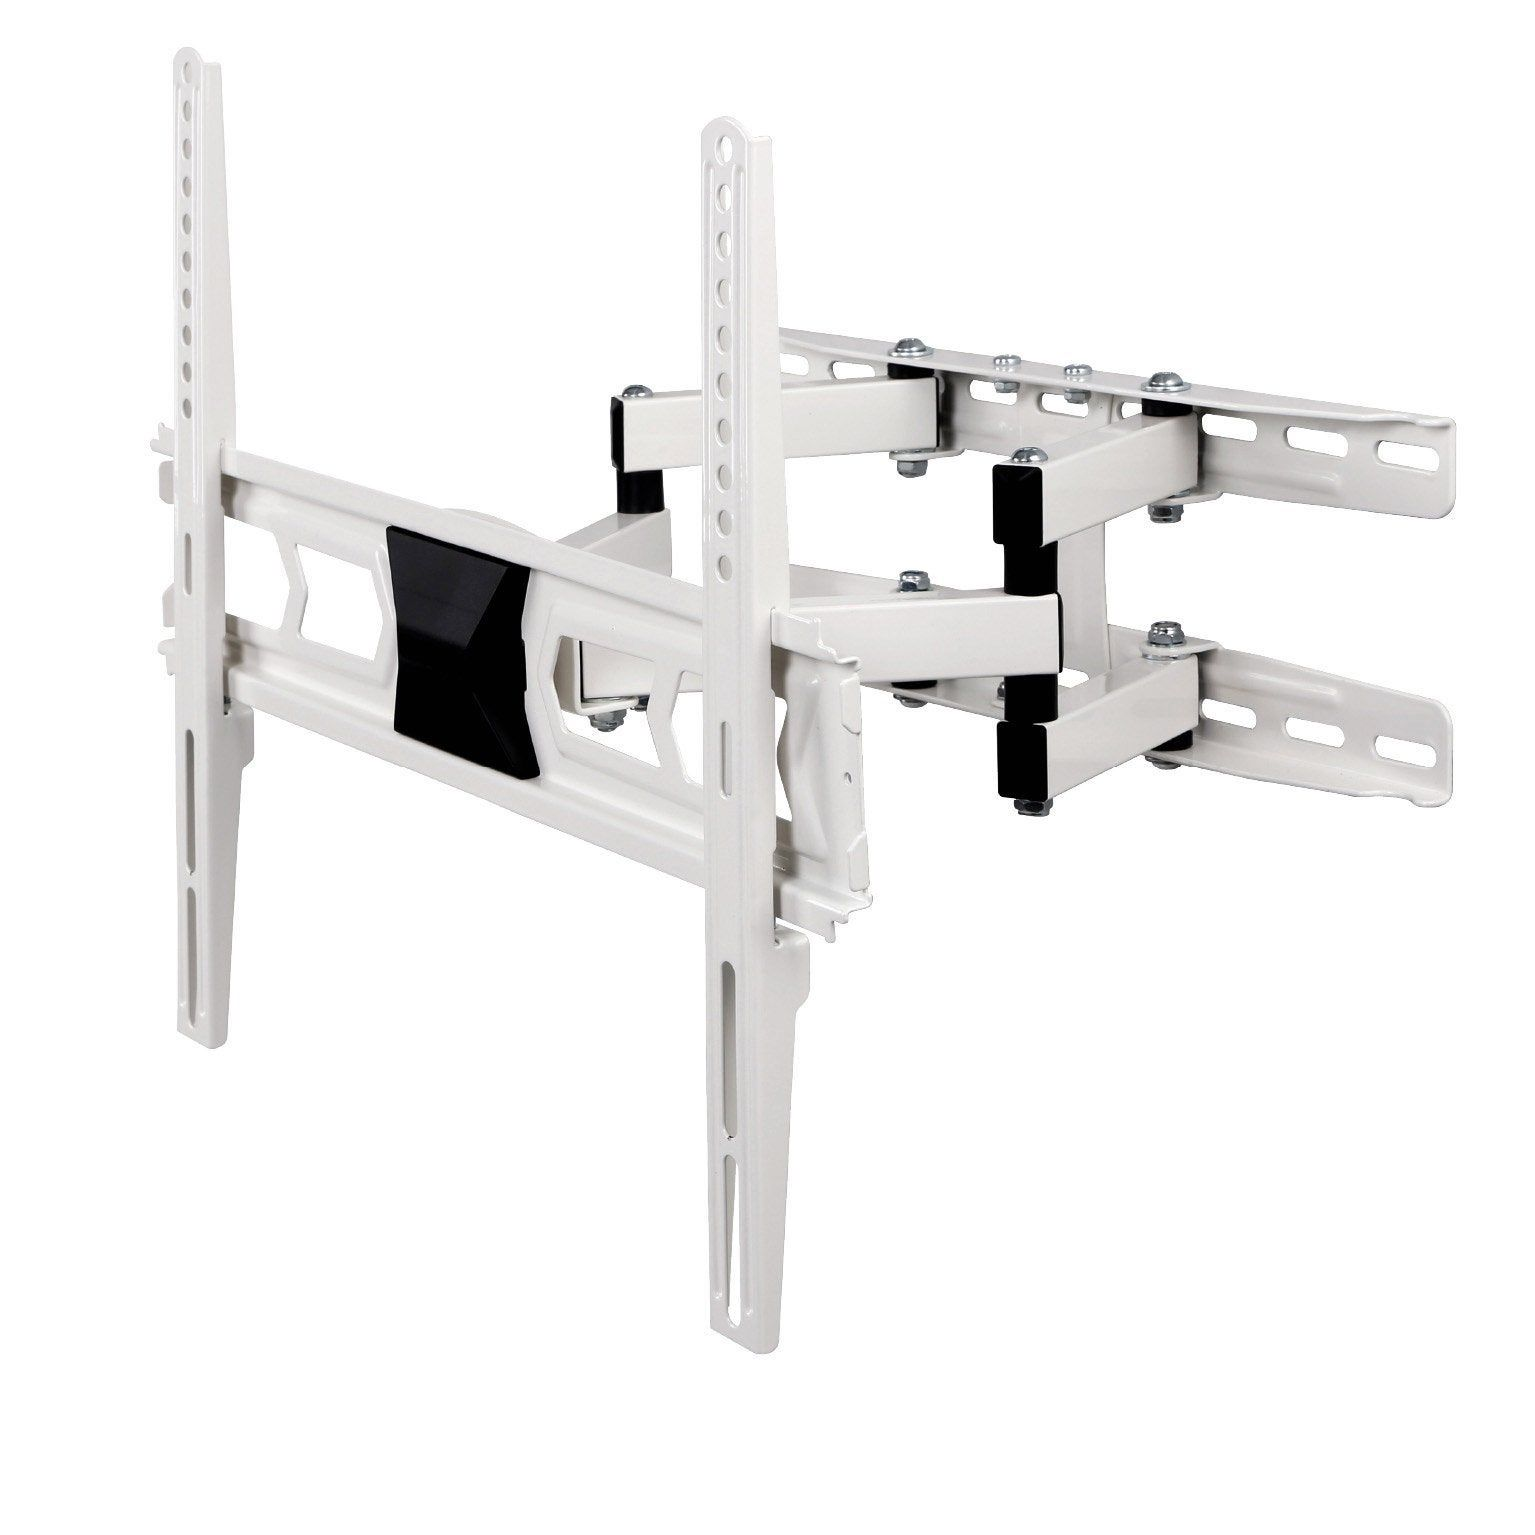 Support Tv Orientable Deporte Sedea Charge Maximale 30 Kg Support Tv Orientable Support Tv Support